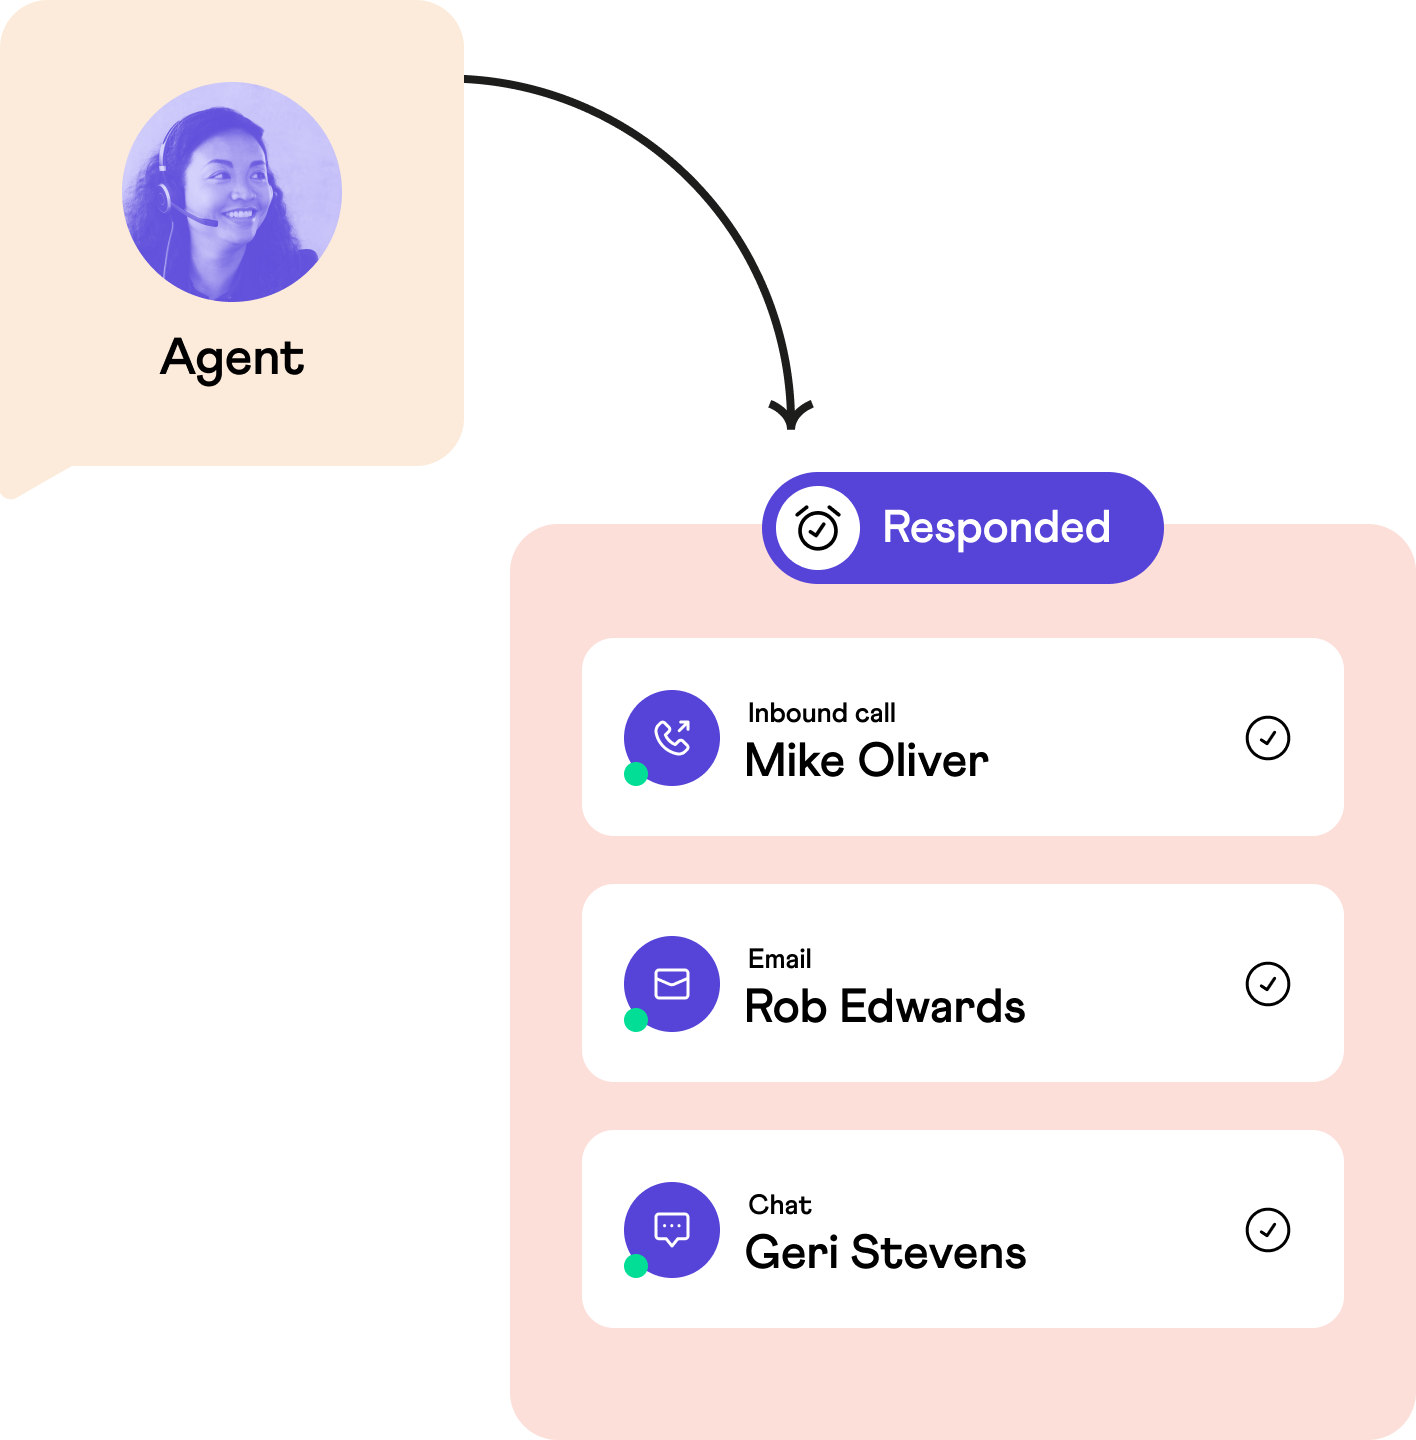 Agent efficiently responding to customers